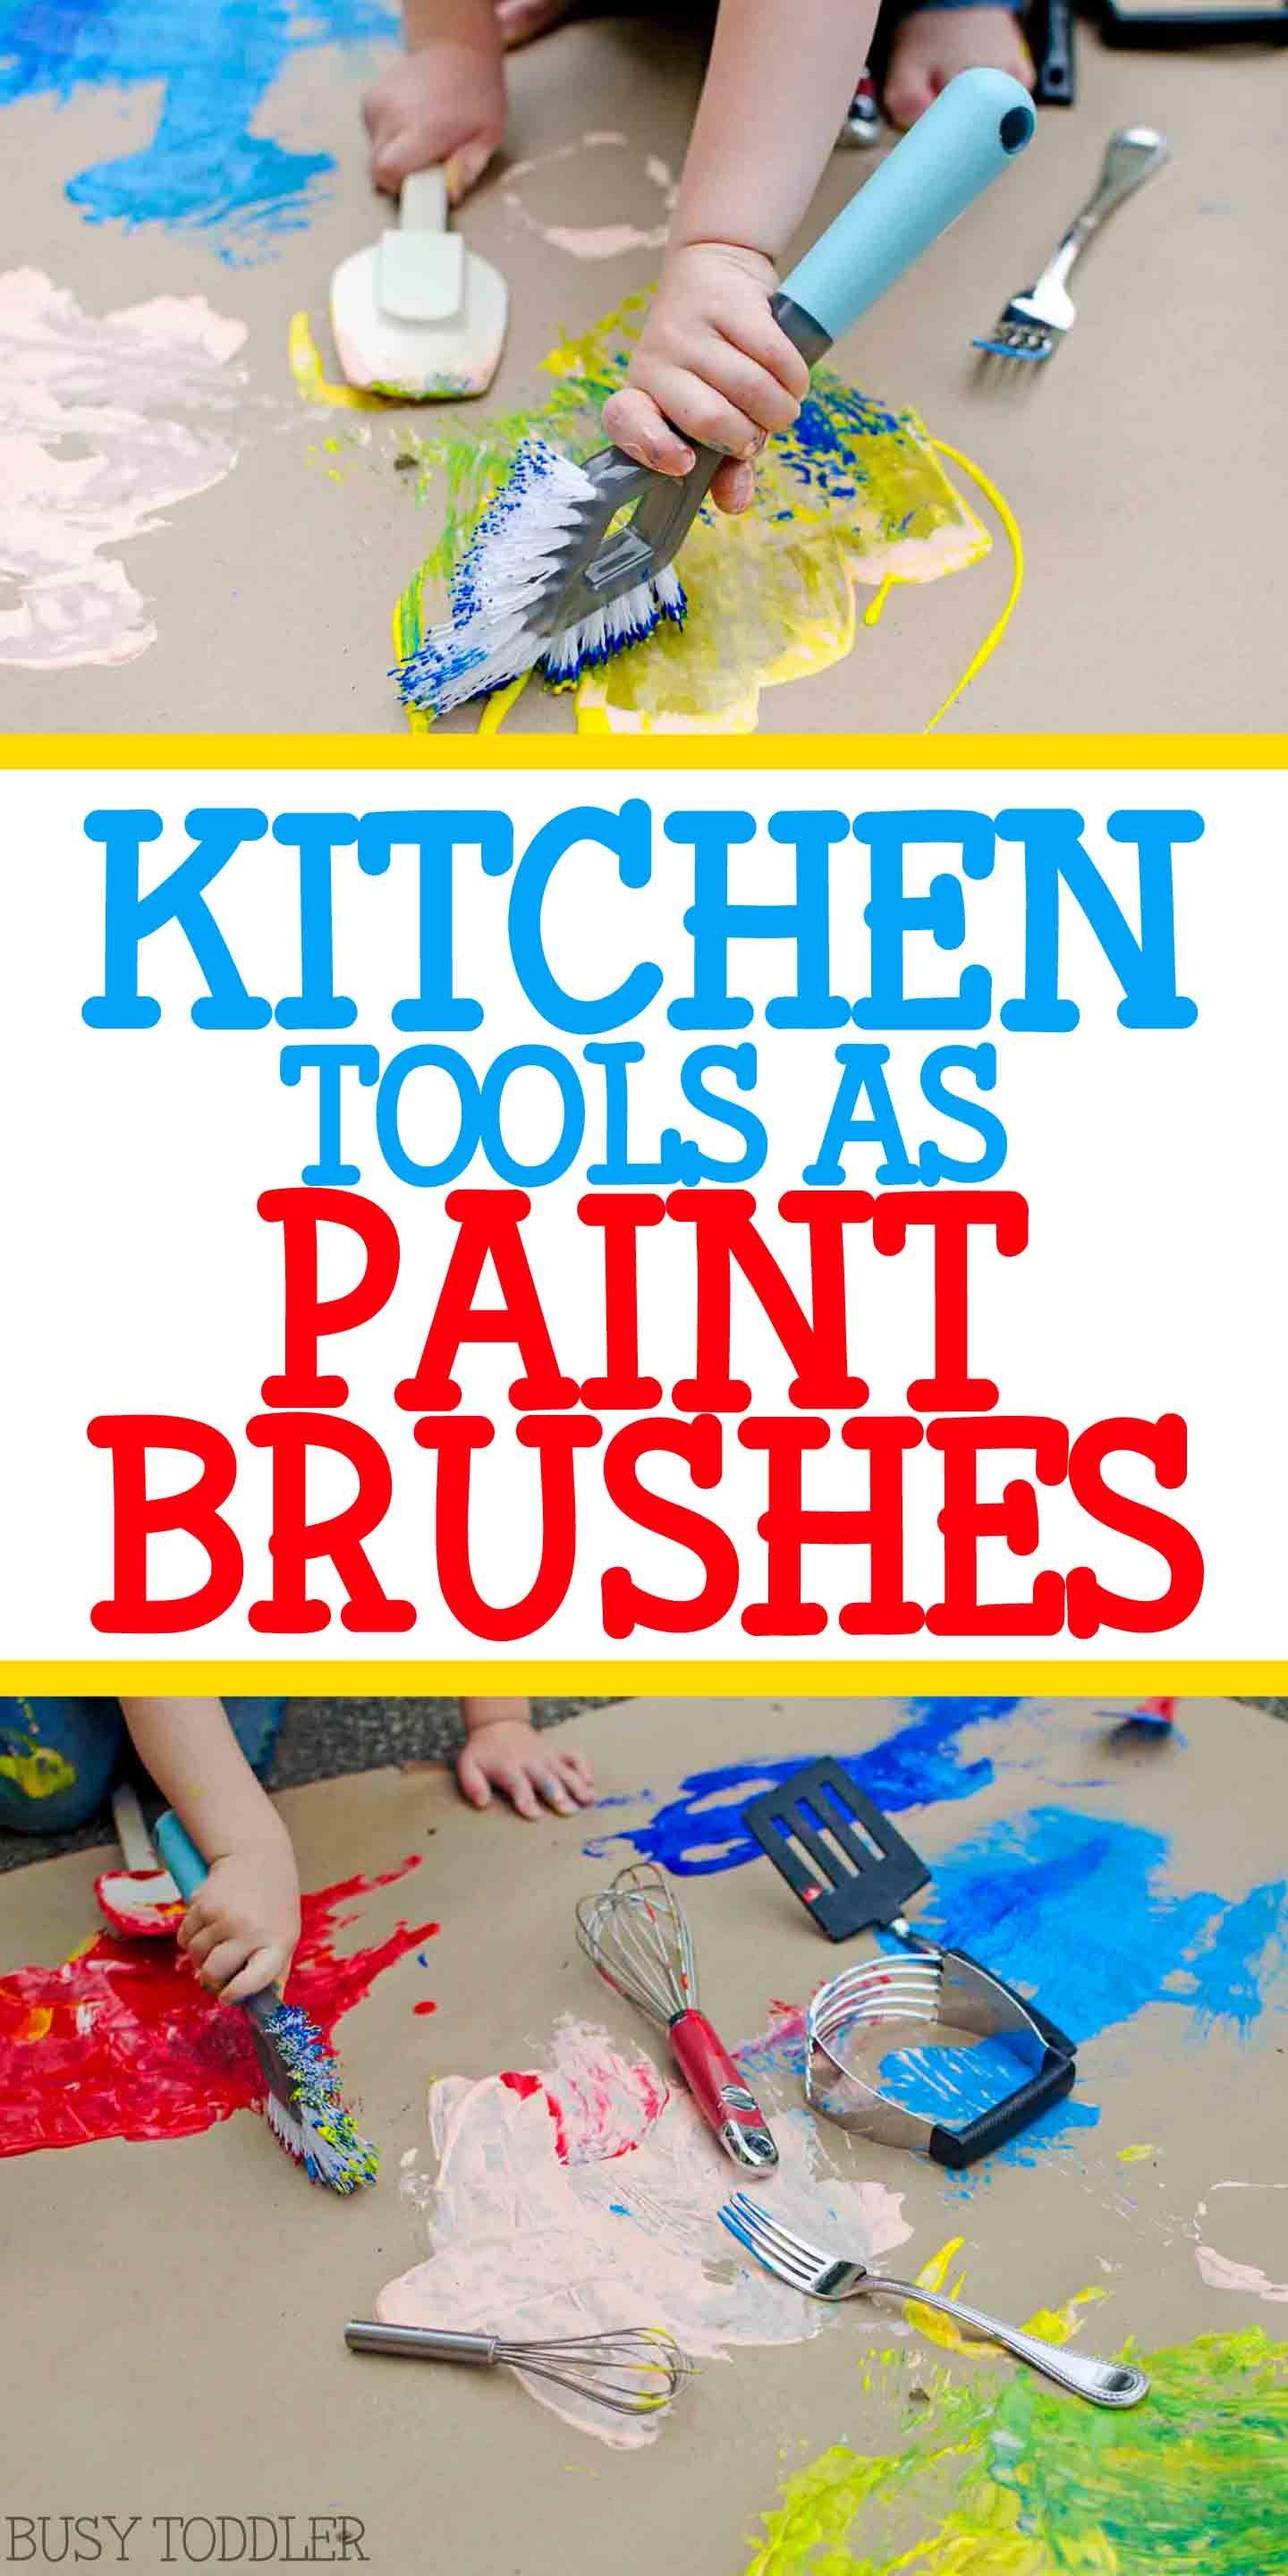 Kitchen Tools As Paint Brushes